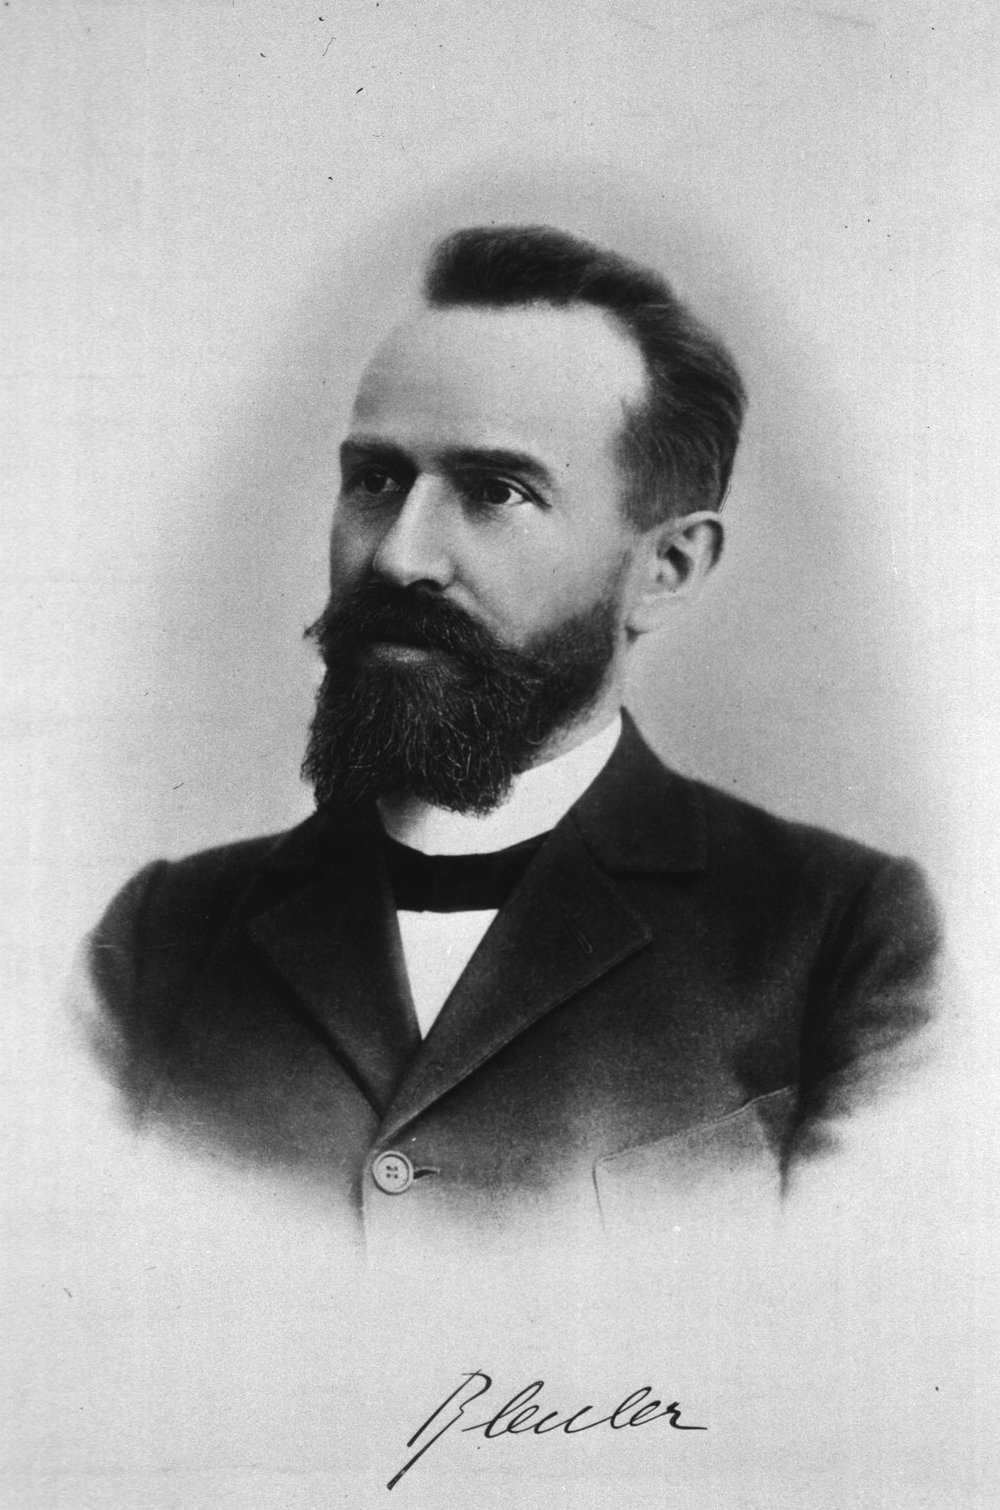 Eugen Bleuler who first introduced the term schizophrenia in 1908.